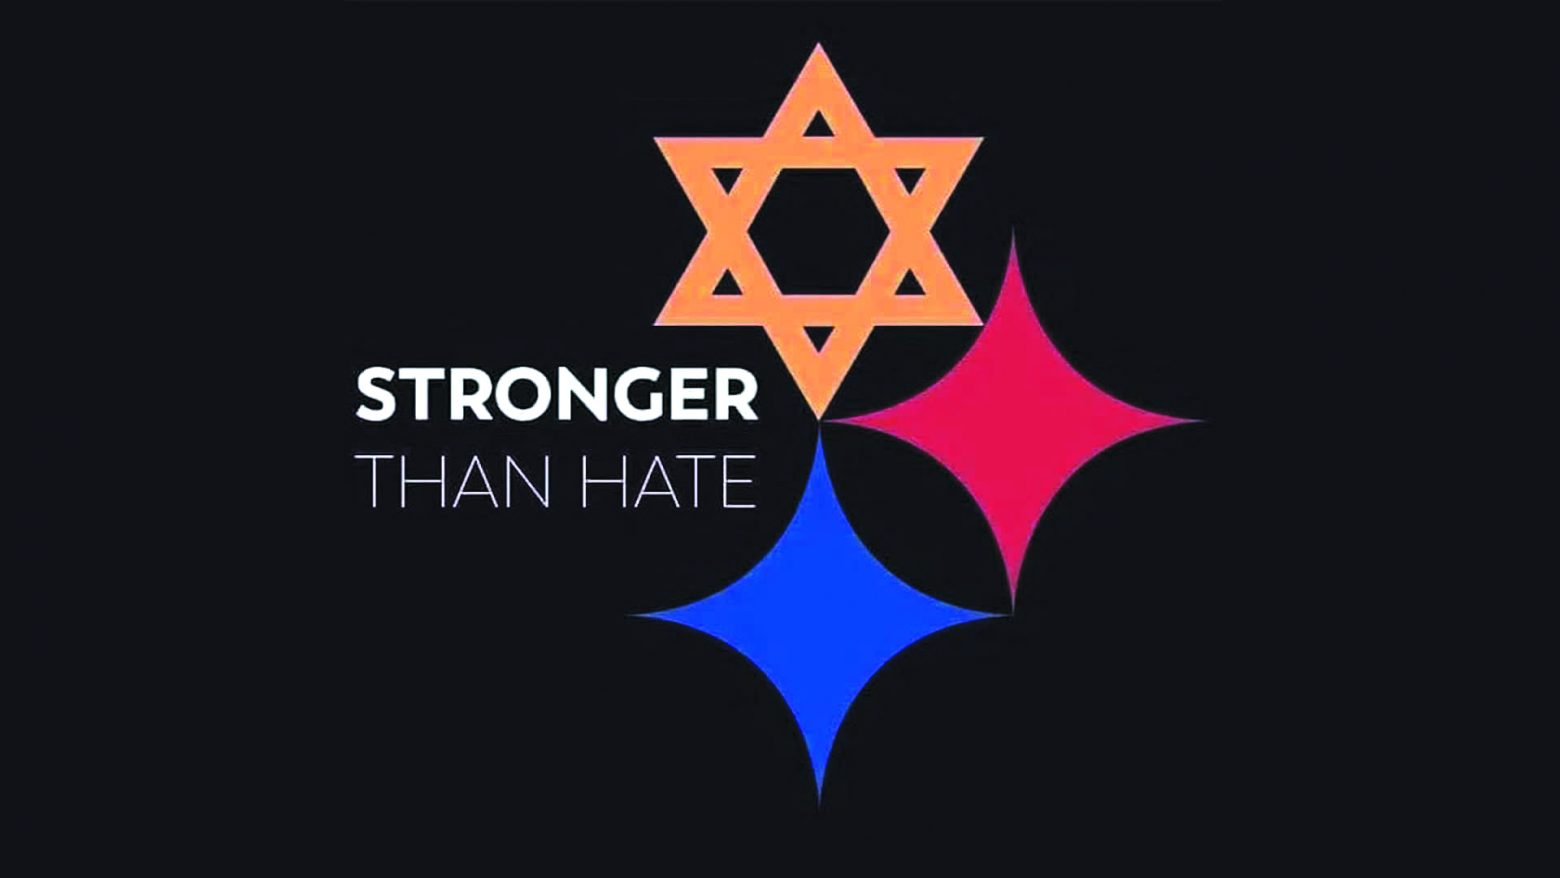 """Stronger than hate"" with a star of david and two rhombus stars to imitate the Pittsburgh Steelers logo"